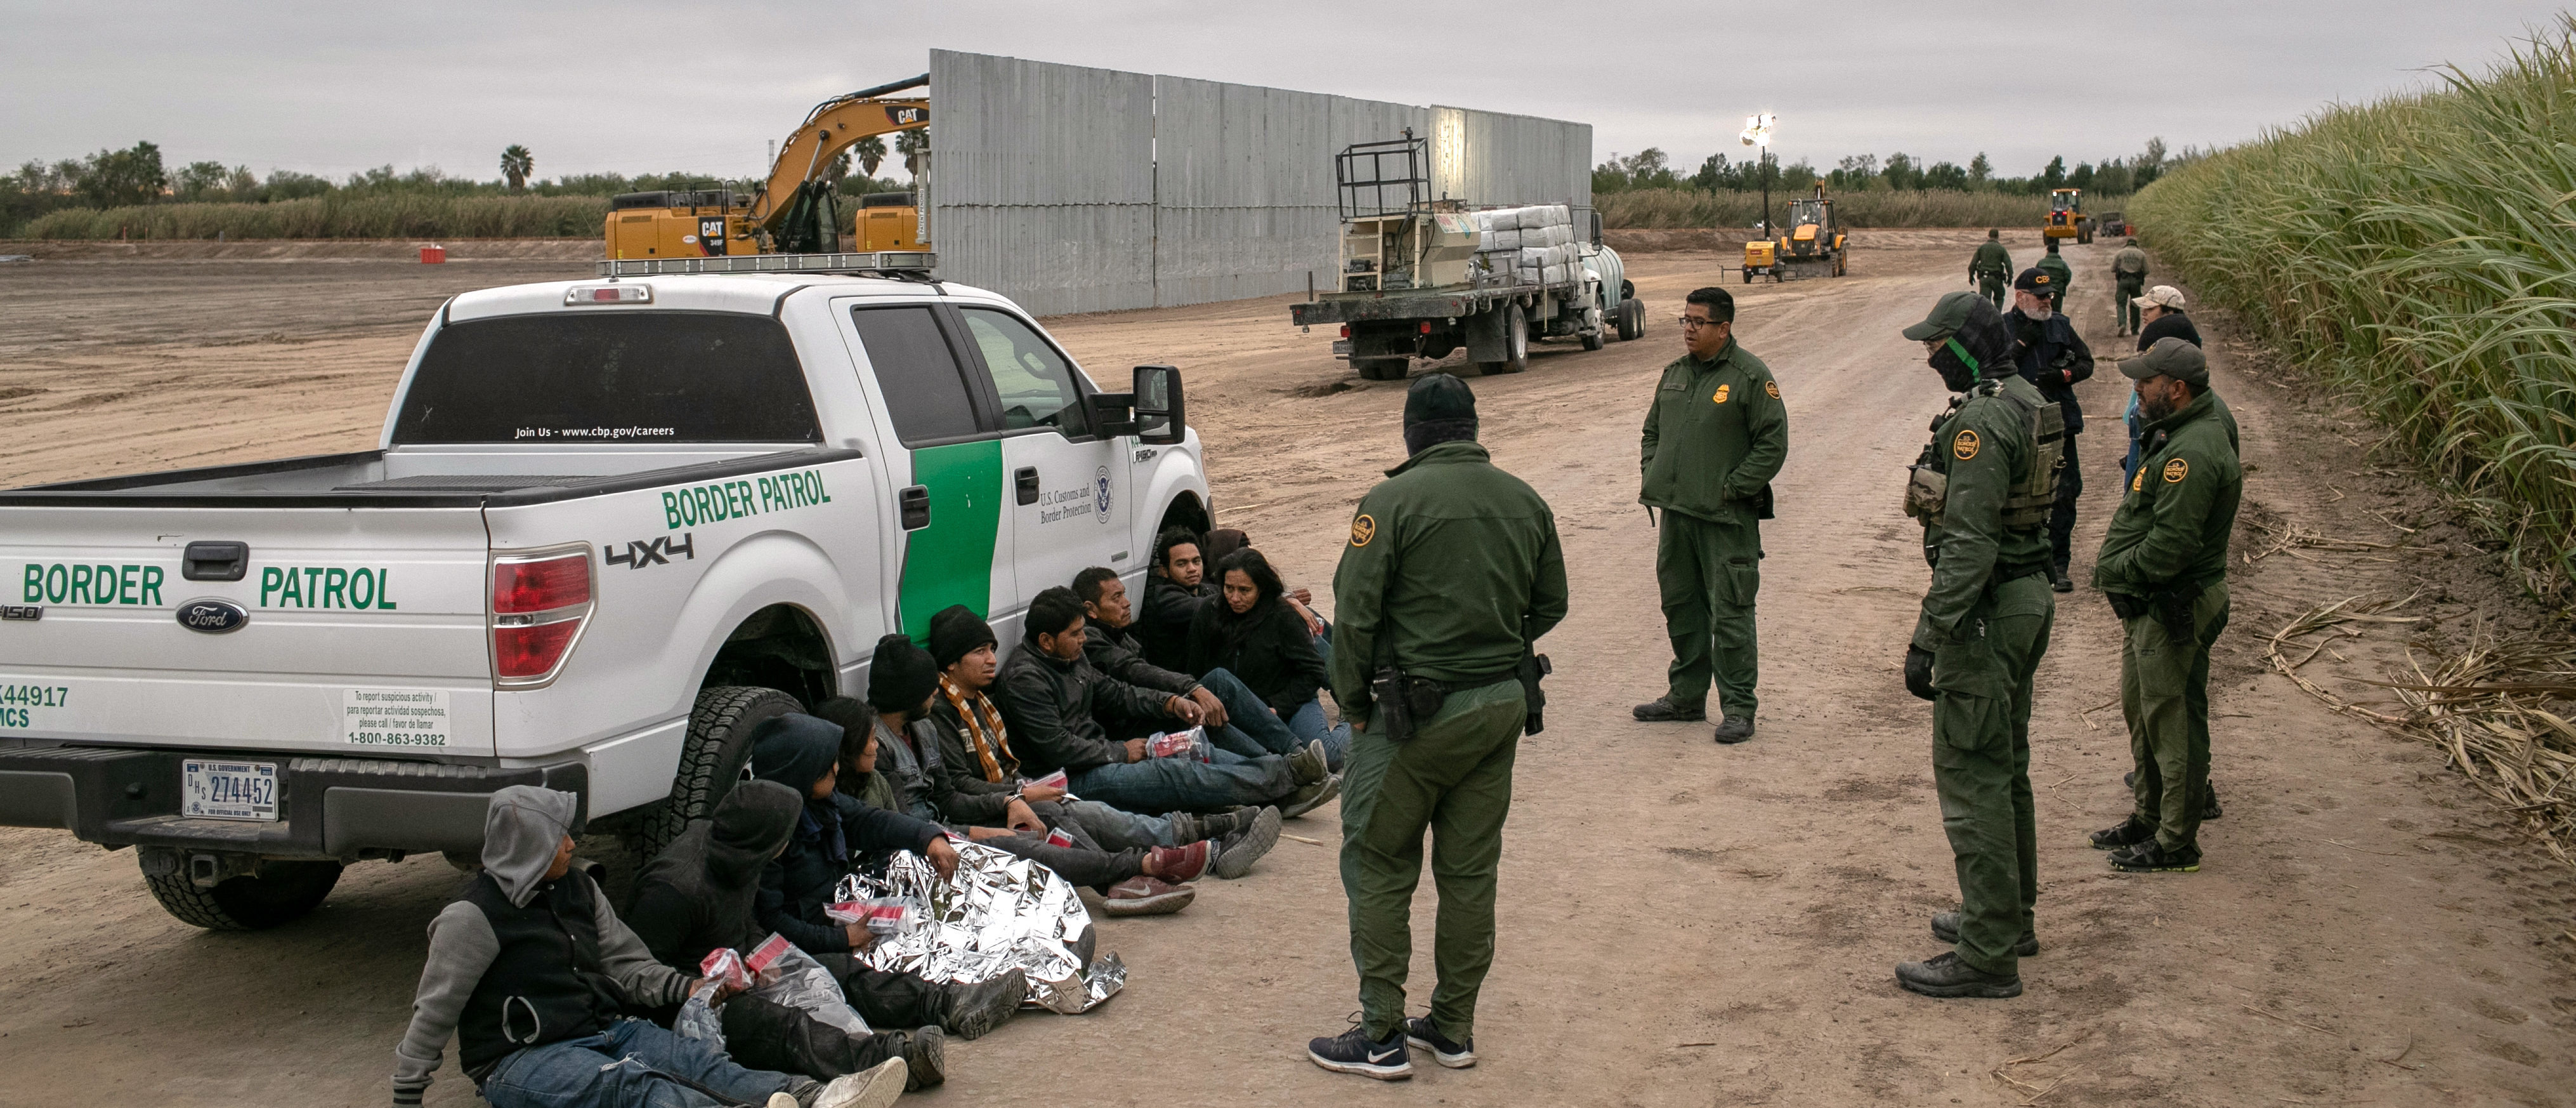 U.S. Border Patrol agents detain undocumented immigrants caught near a section of privately-built border wall under construction on Dec. 11, 2019 near Mission, Texas. (Photo by John Moore/Getty Images)